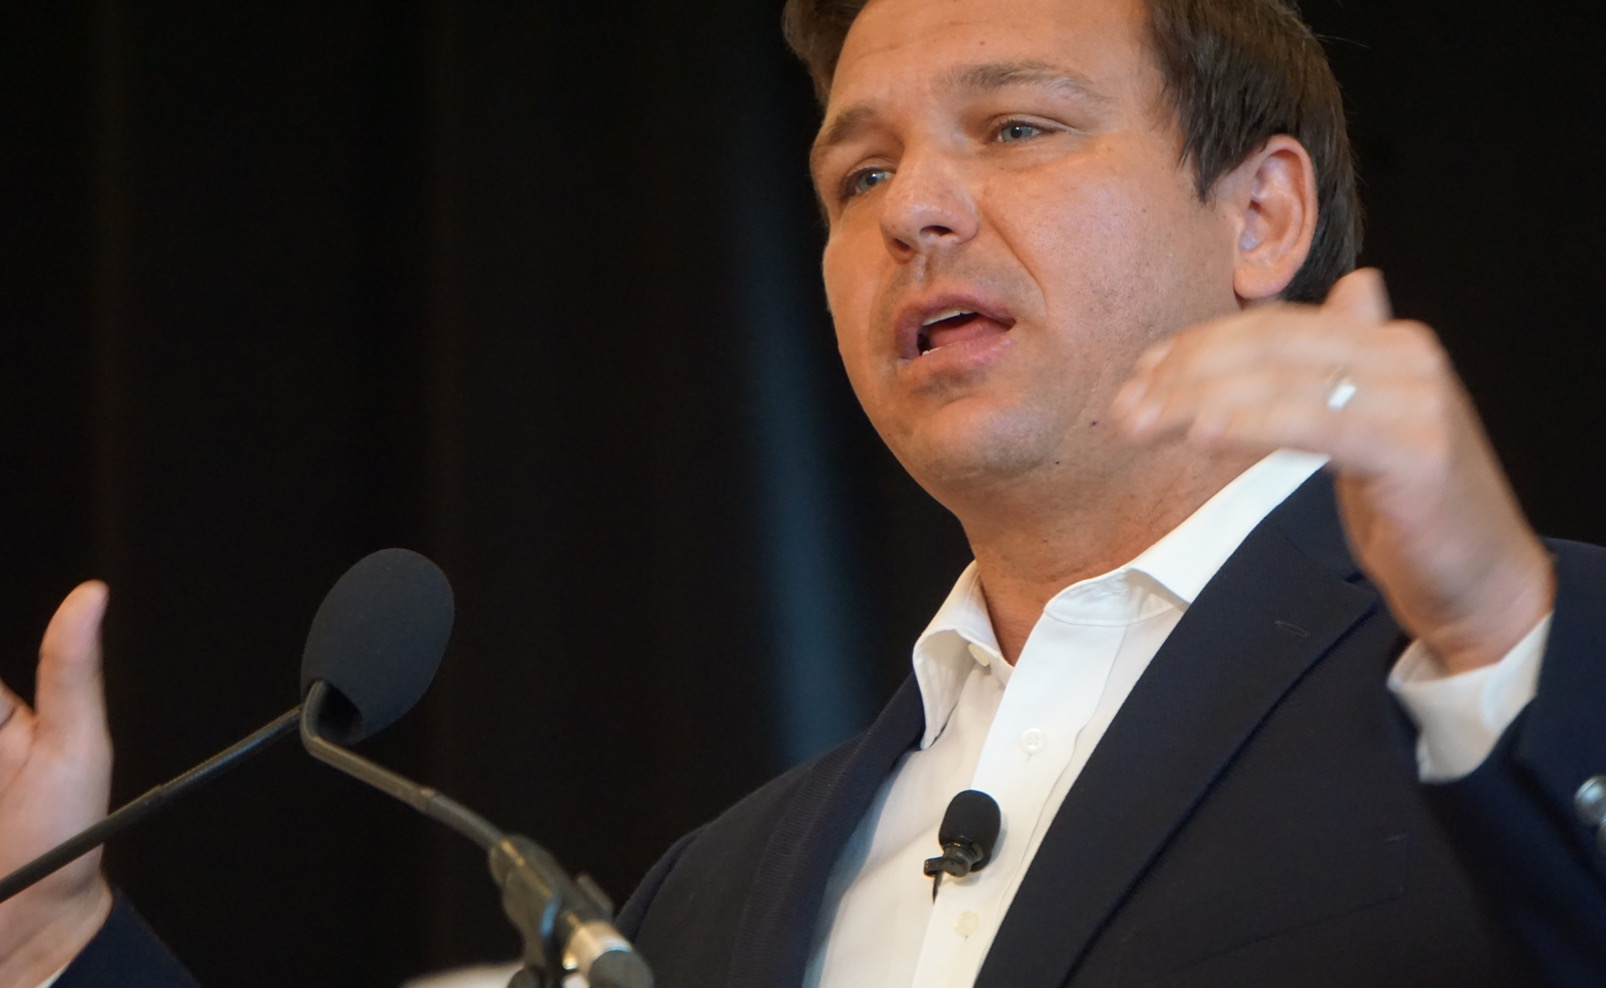 Florida's Daily Political Read – 8.26.19- DeSantis Voter Roll Clean-Up – Trump's Tariffs Working, China Wants to Negotiate